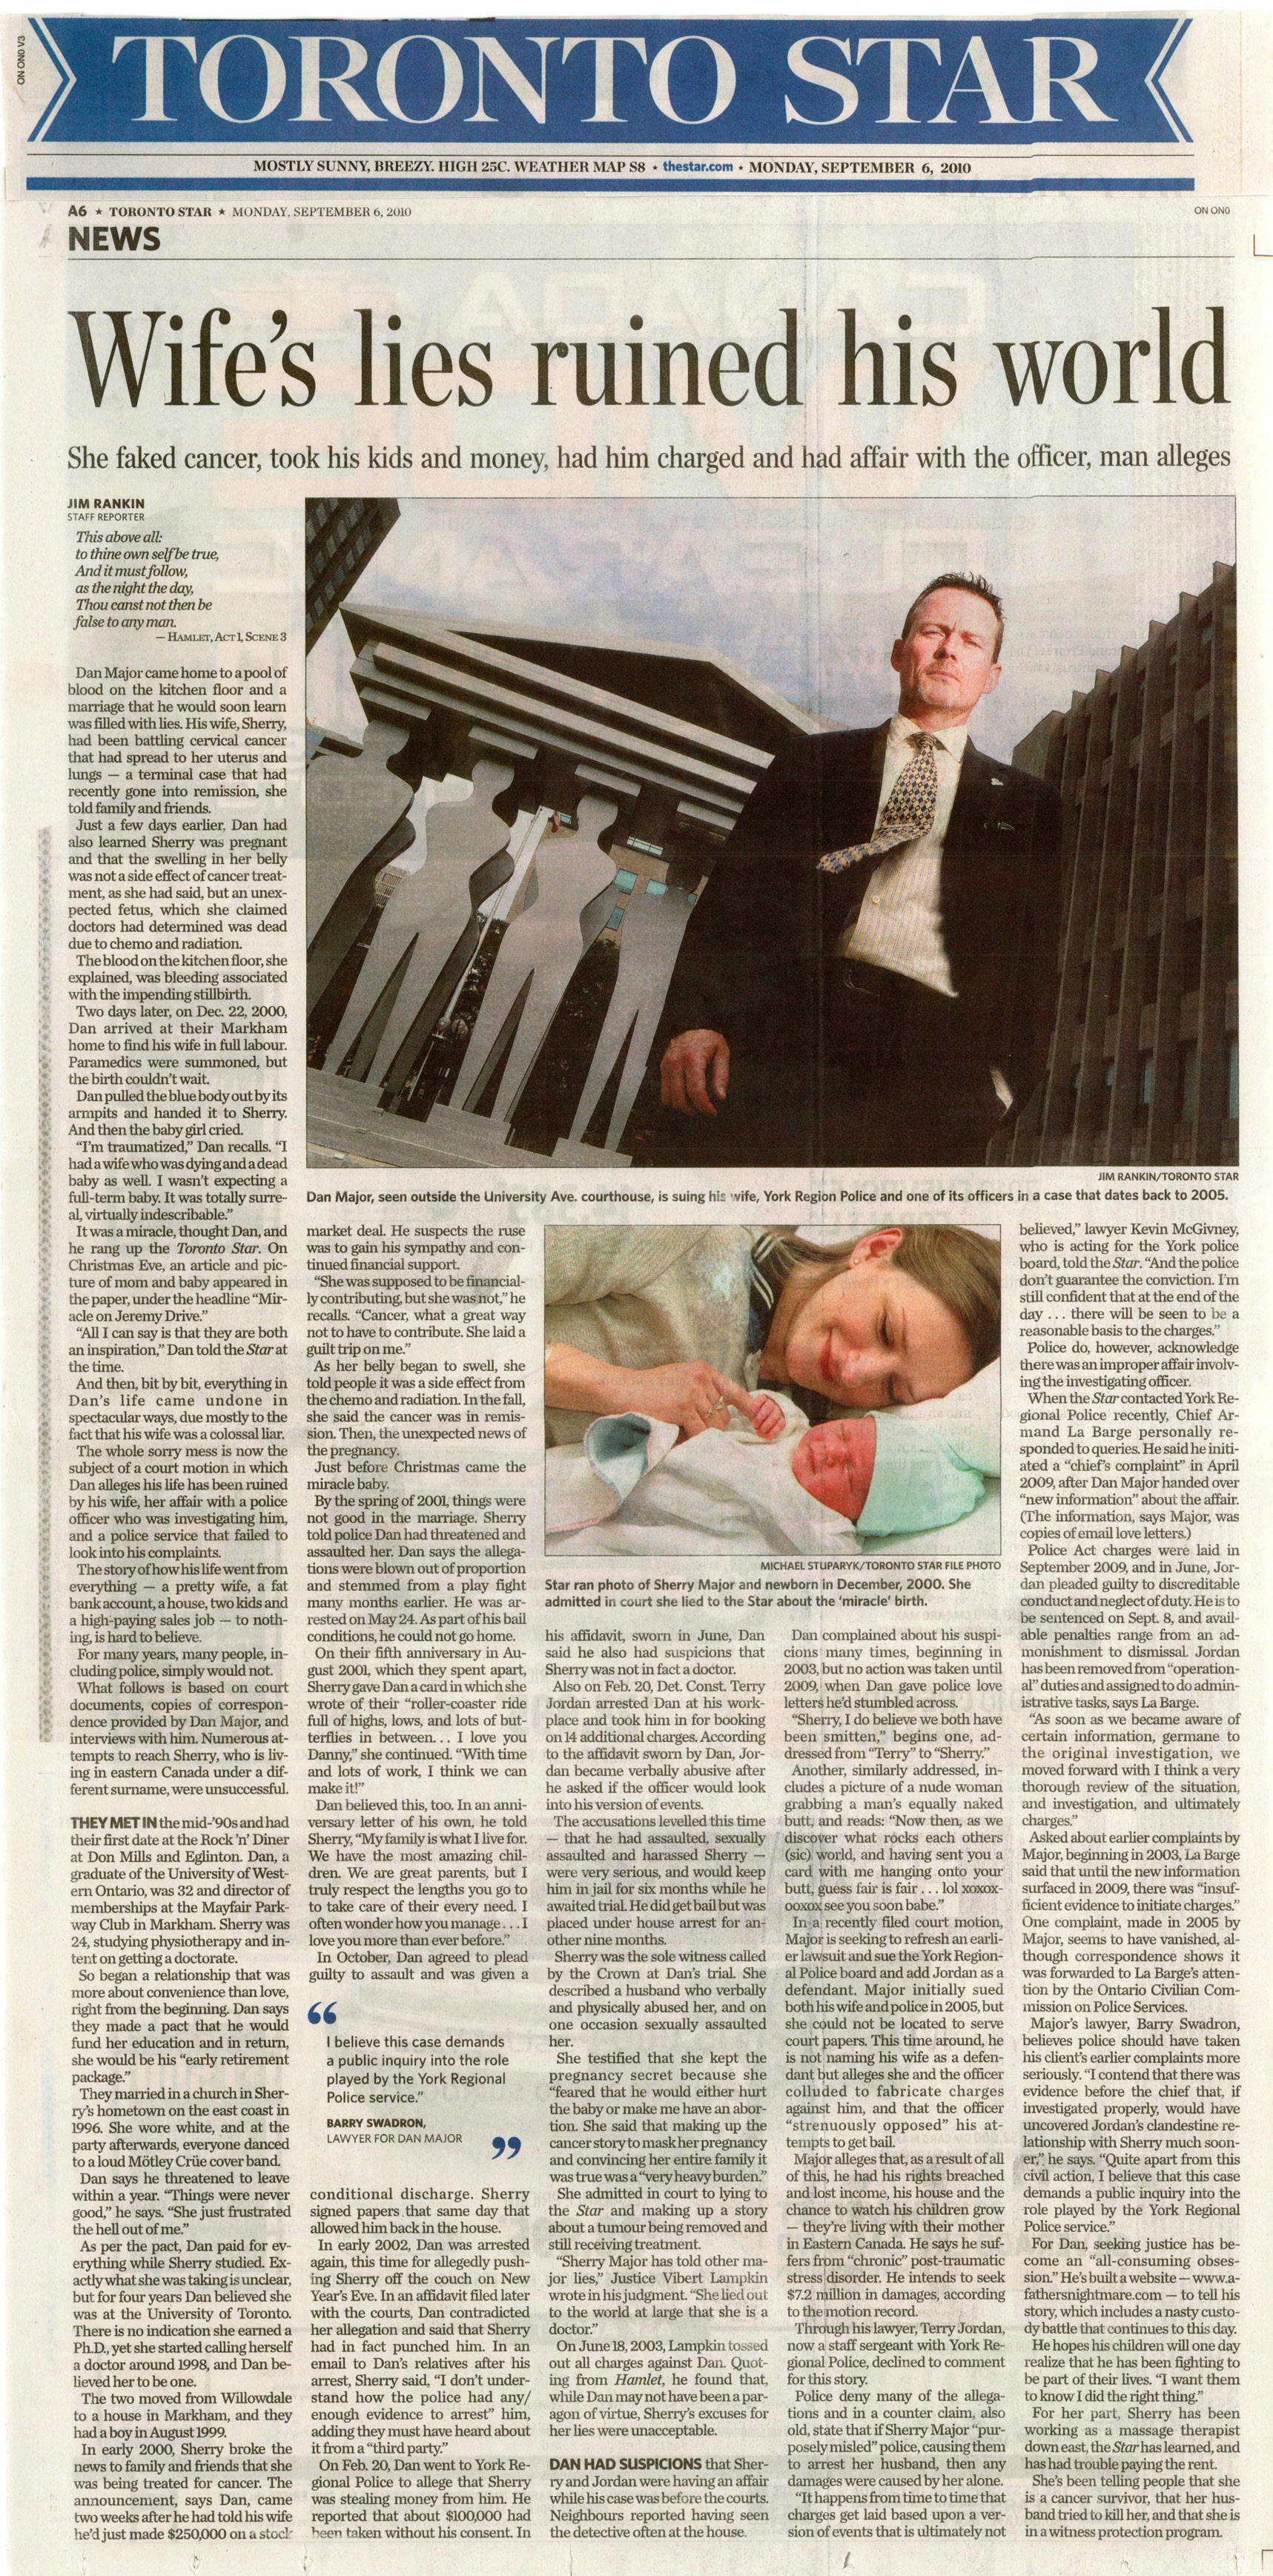 Toronto Star 2010-09-06 Wife's lies ruined his world